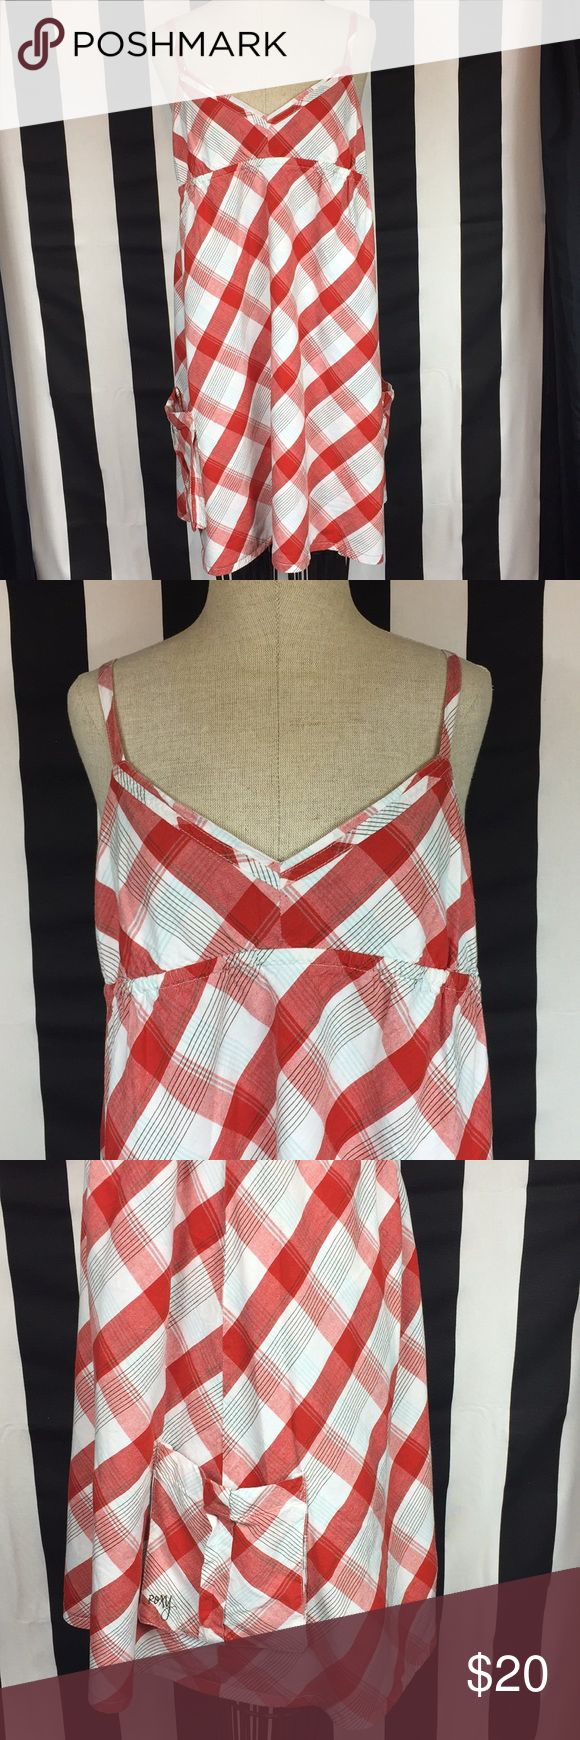 """Roxy beach dress swim coverup sz large Roxy beach dress swim coverup in red, white and blue plaid.  Two side pockets. In good condition Measures approximately 18"""" flat across chest and is approximately 26"""" from top of side seam to hem Roxy Dresses"""